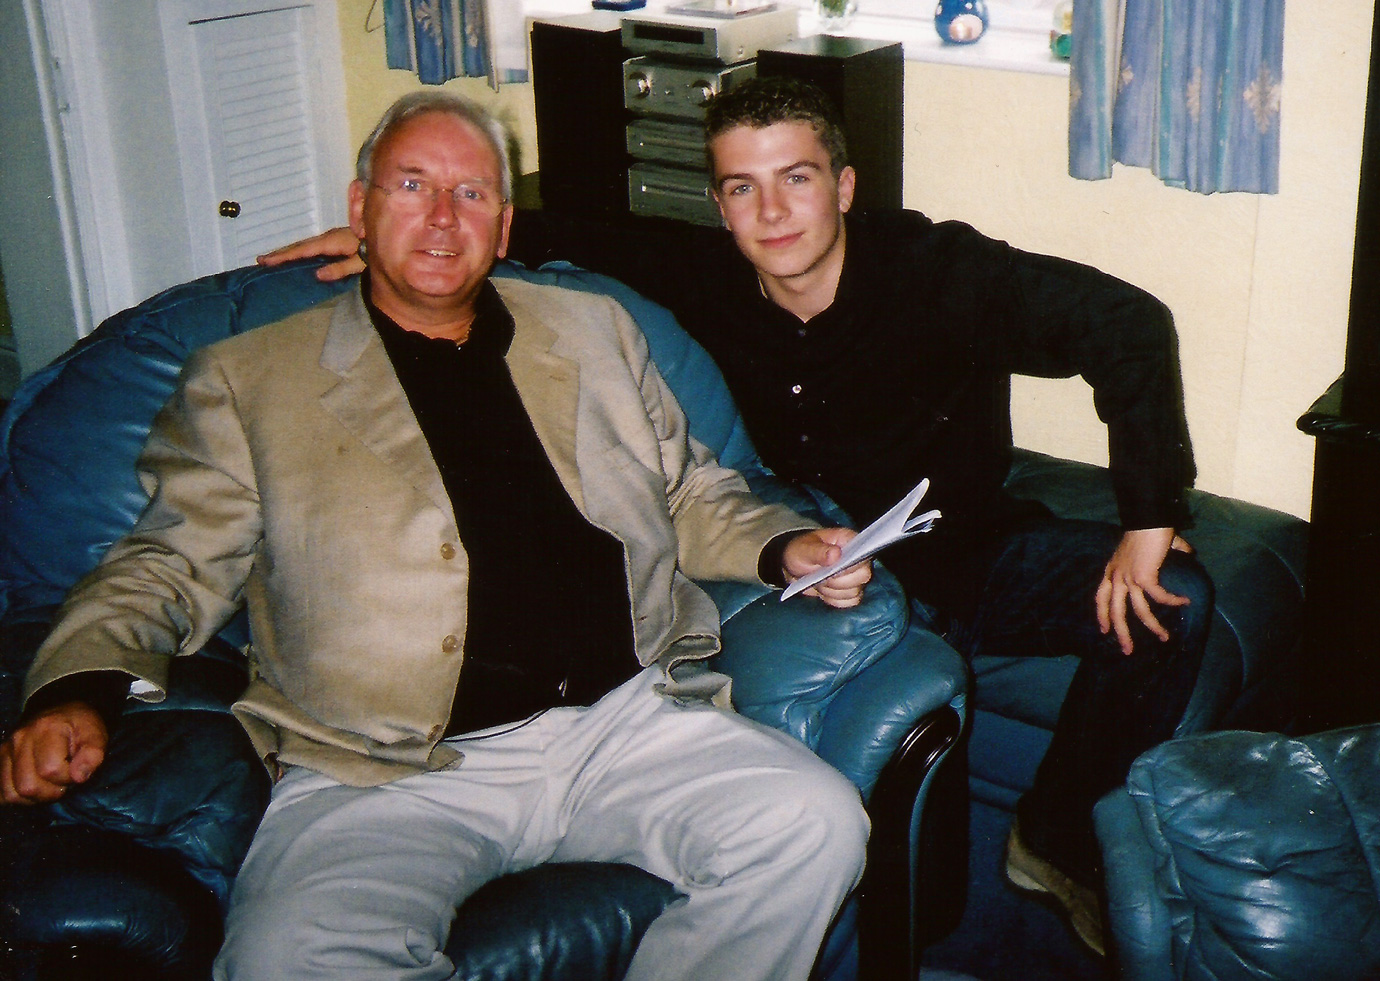 Image of Matt Johnson and Pete Waterman from Popstars The Rivals, One True Voice.